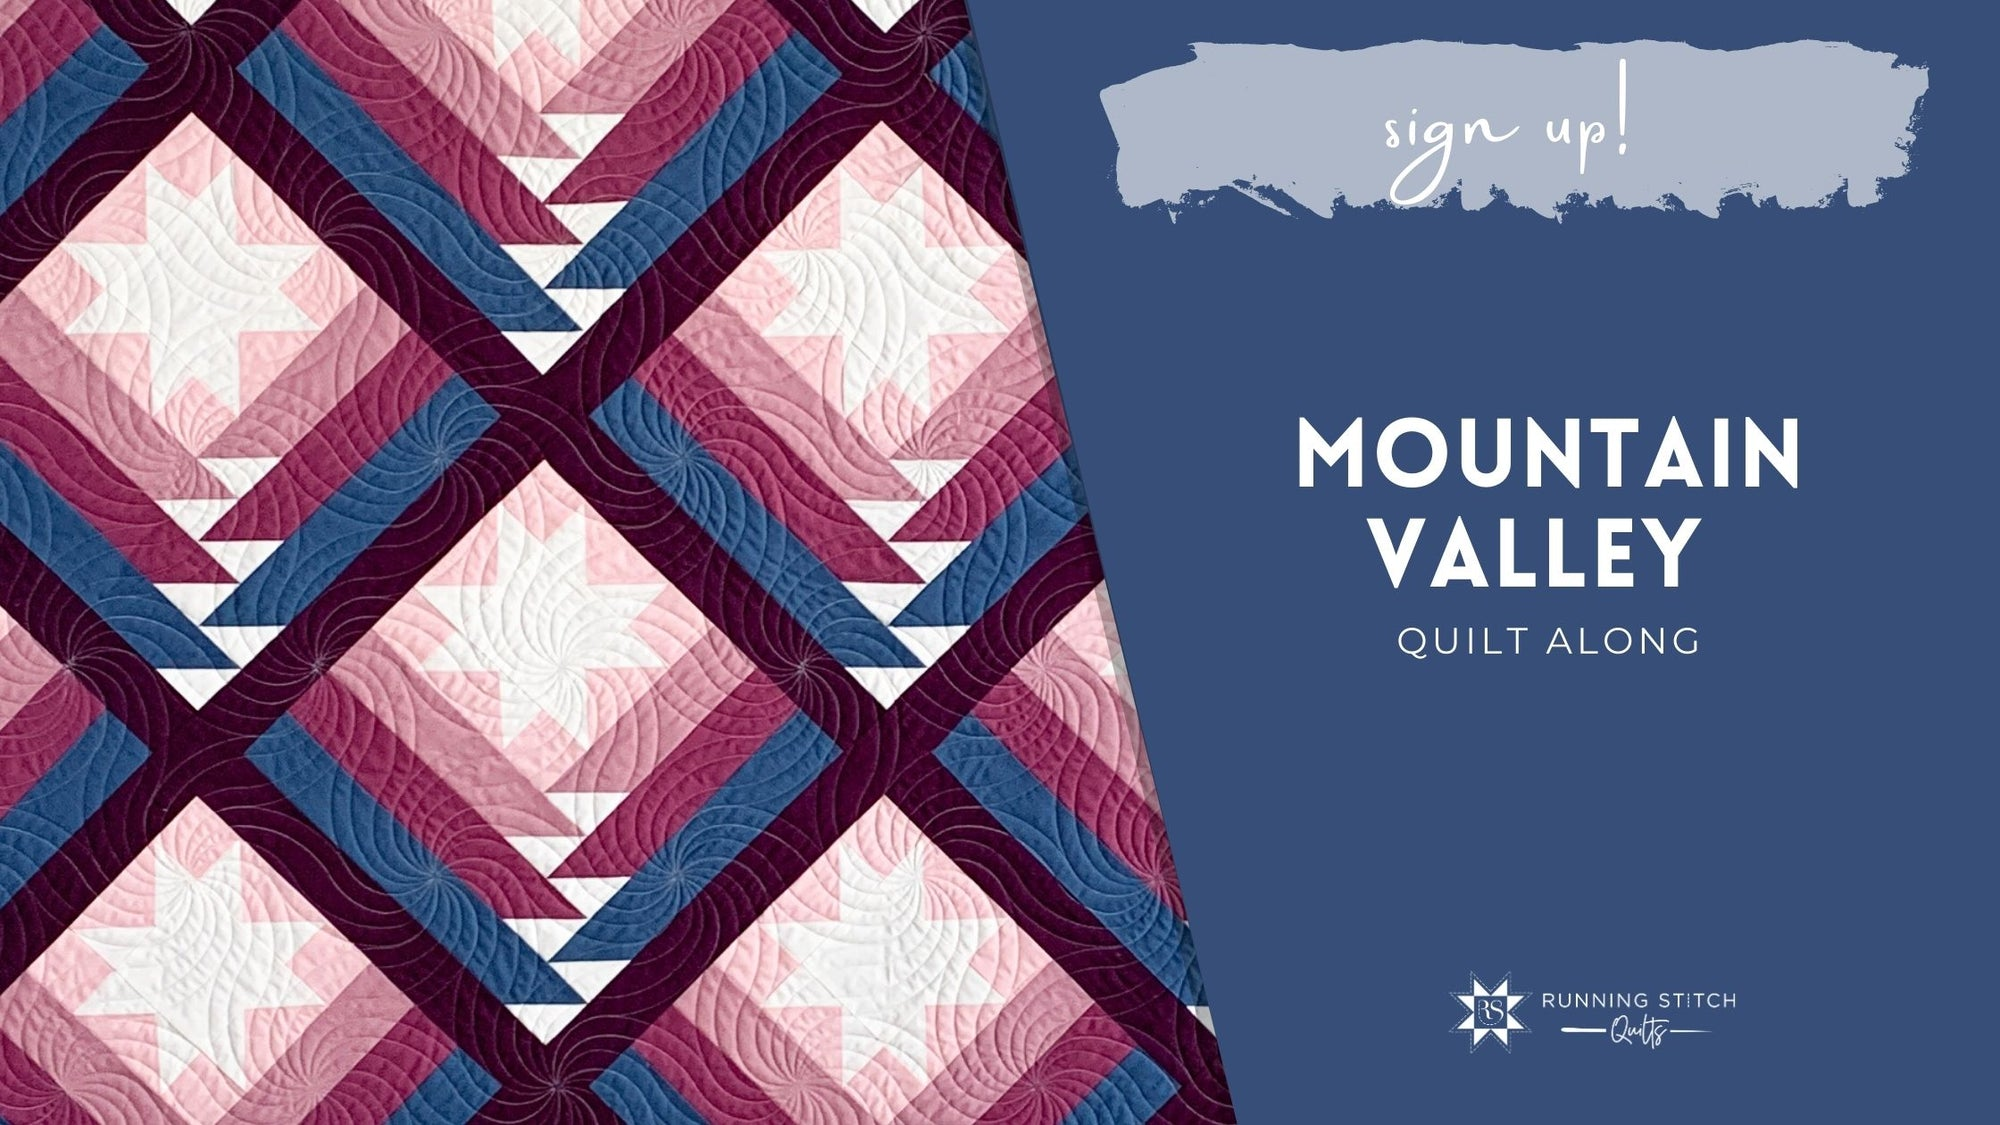 Mountain Valley Quilt Along!